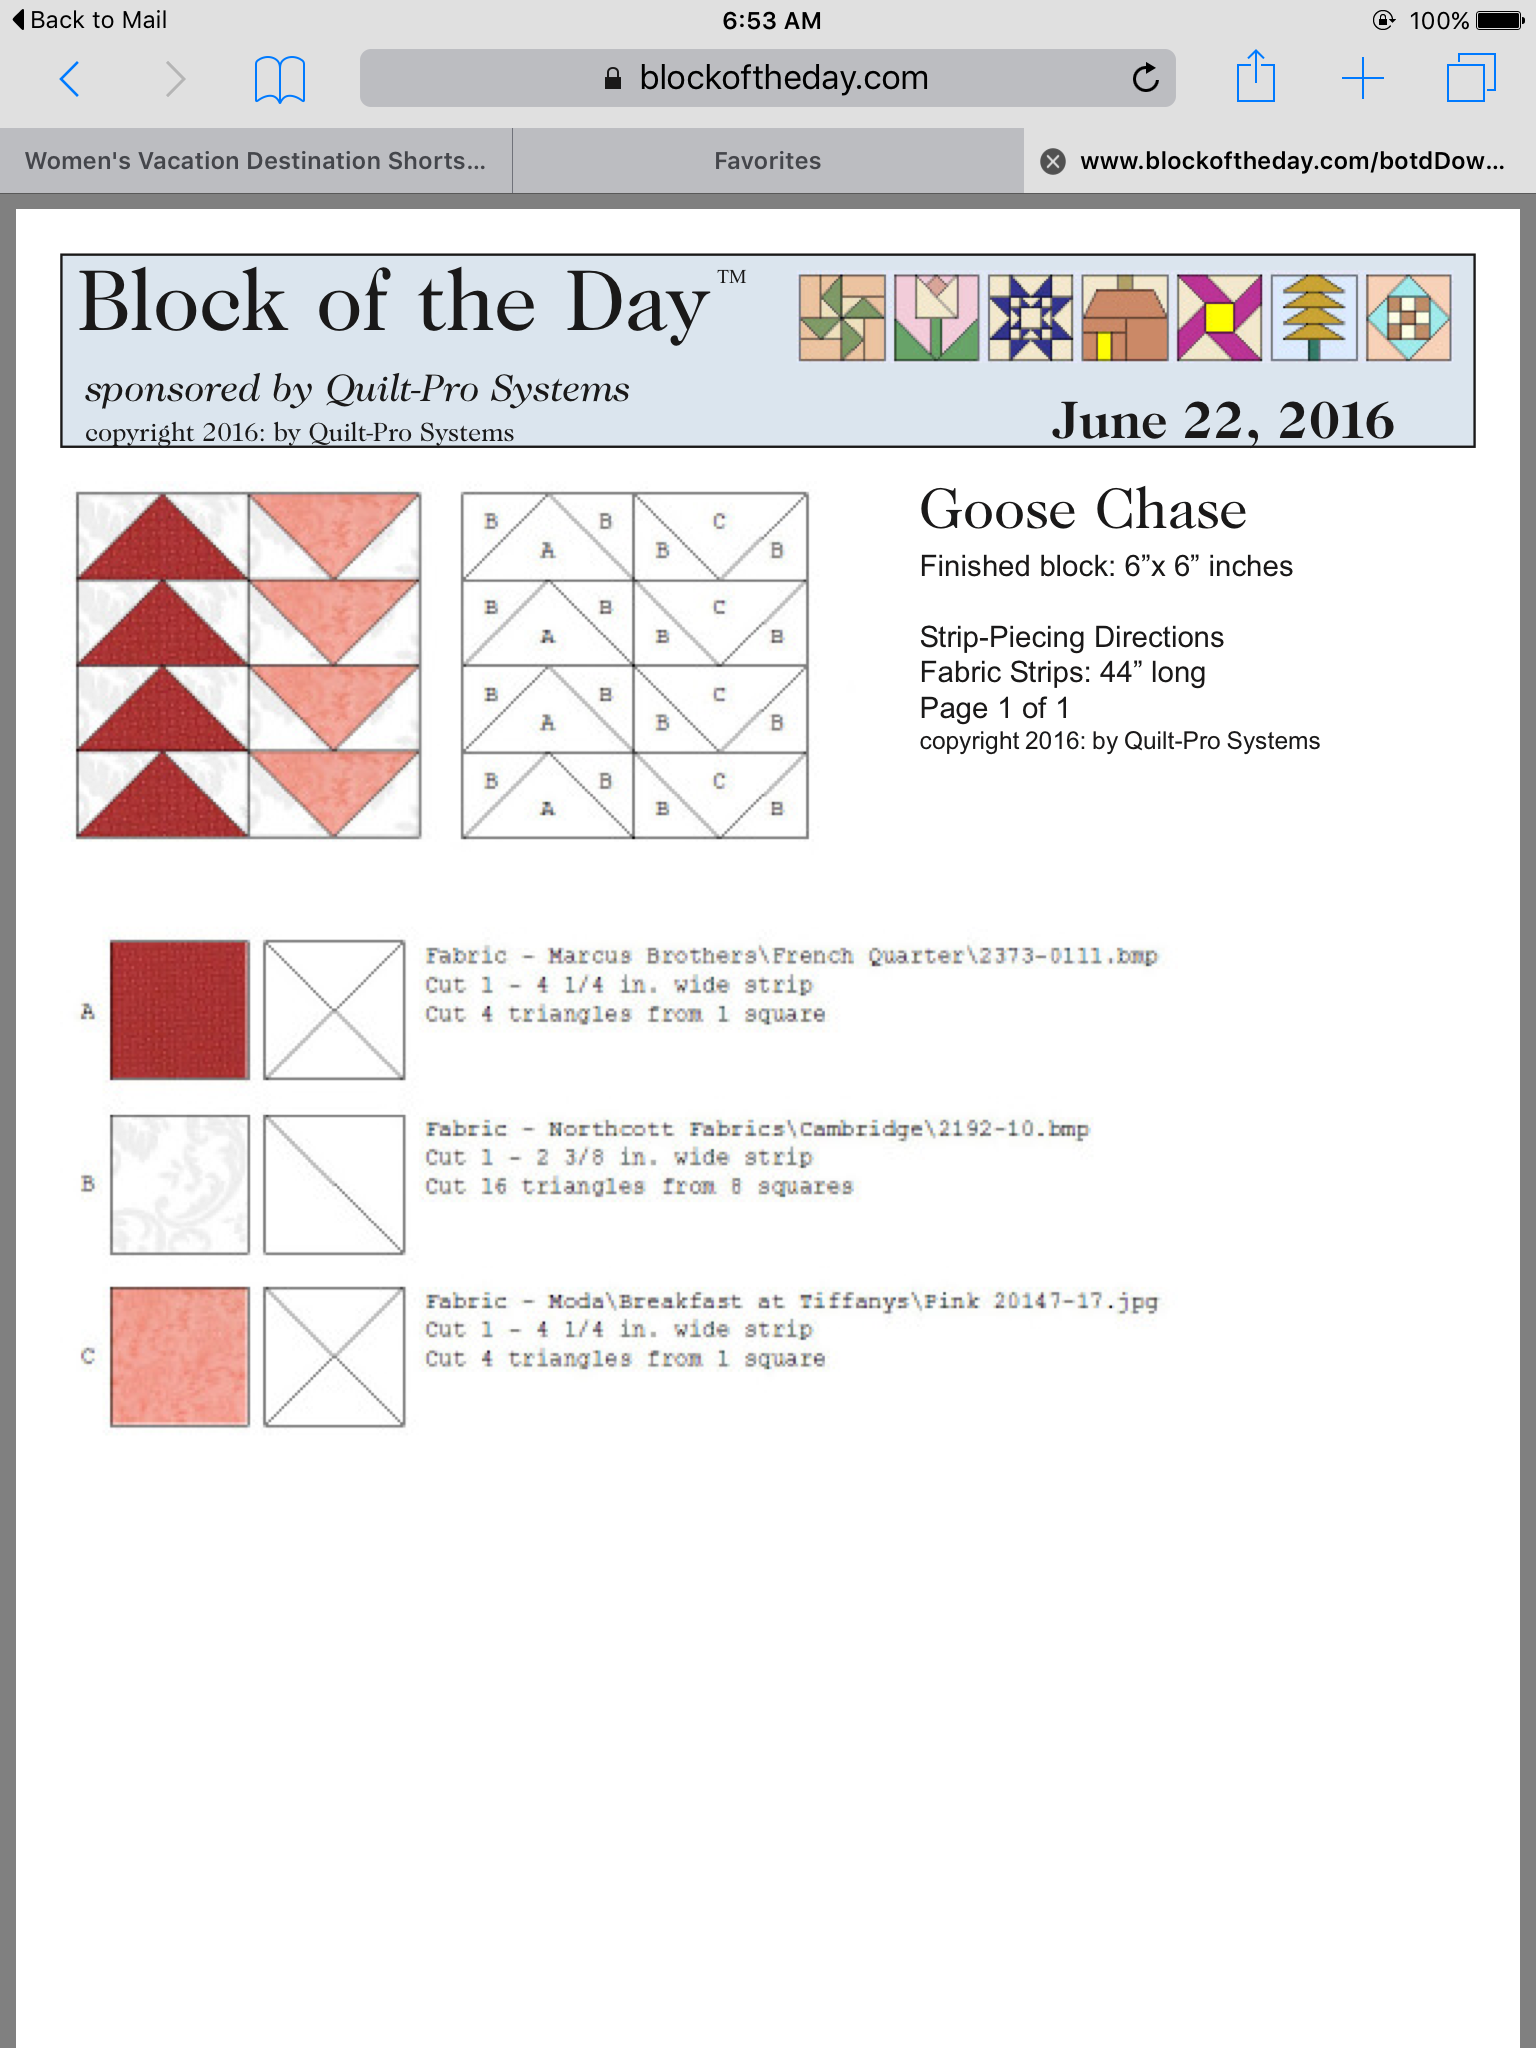 Goose Chase block Quilt Block Patterns many tutorials